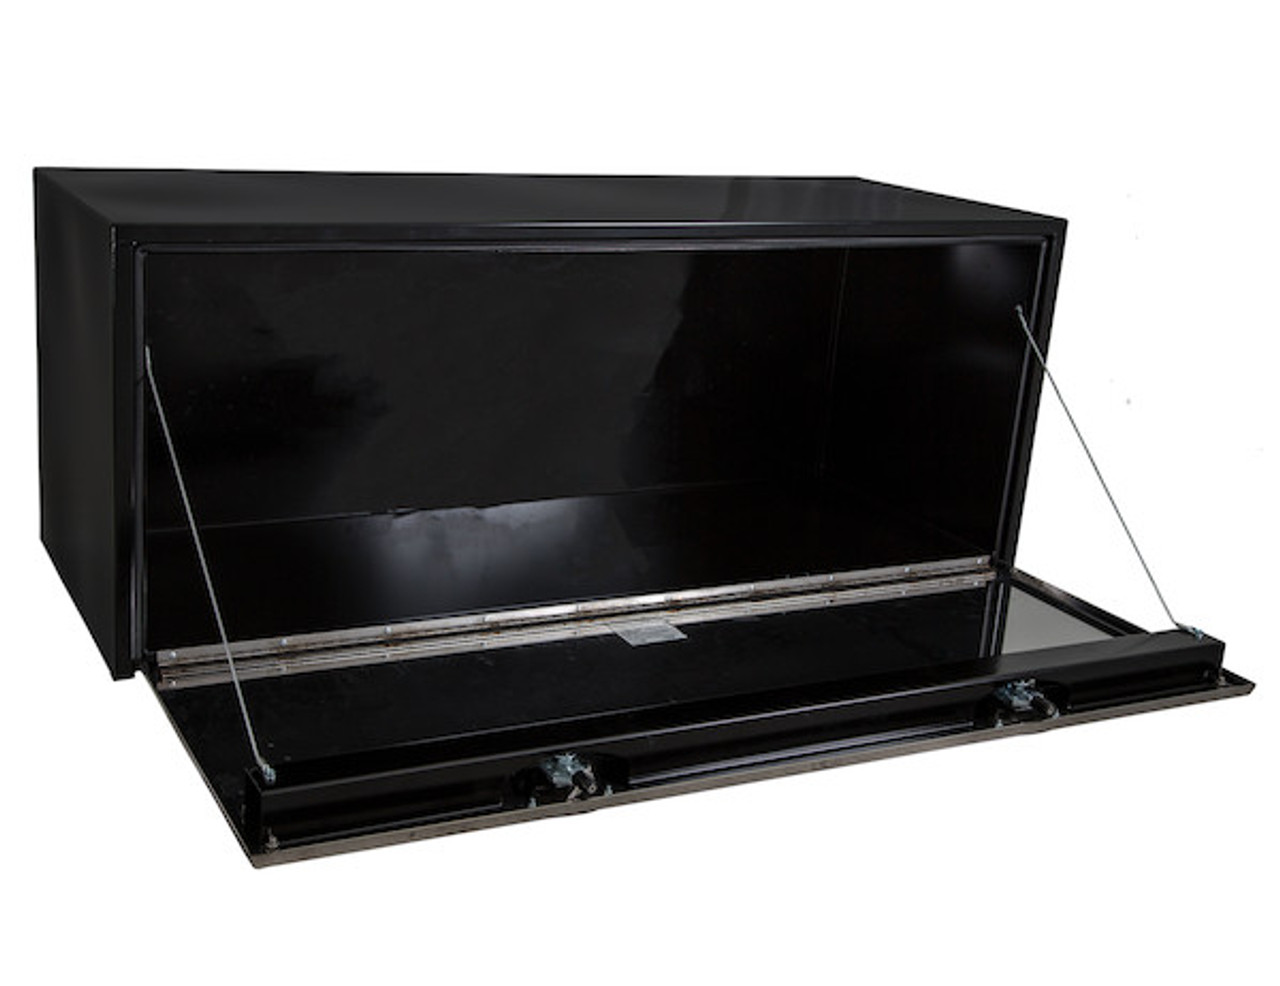 "1704715 BUYERS PRODUCTS BLACK STEEL UNDERBODY TRUCK TOOLBOX WITH STAINLESS STEEL DOOR 24""HX24""DX60""W"